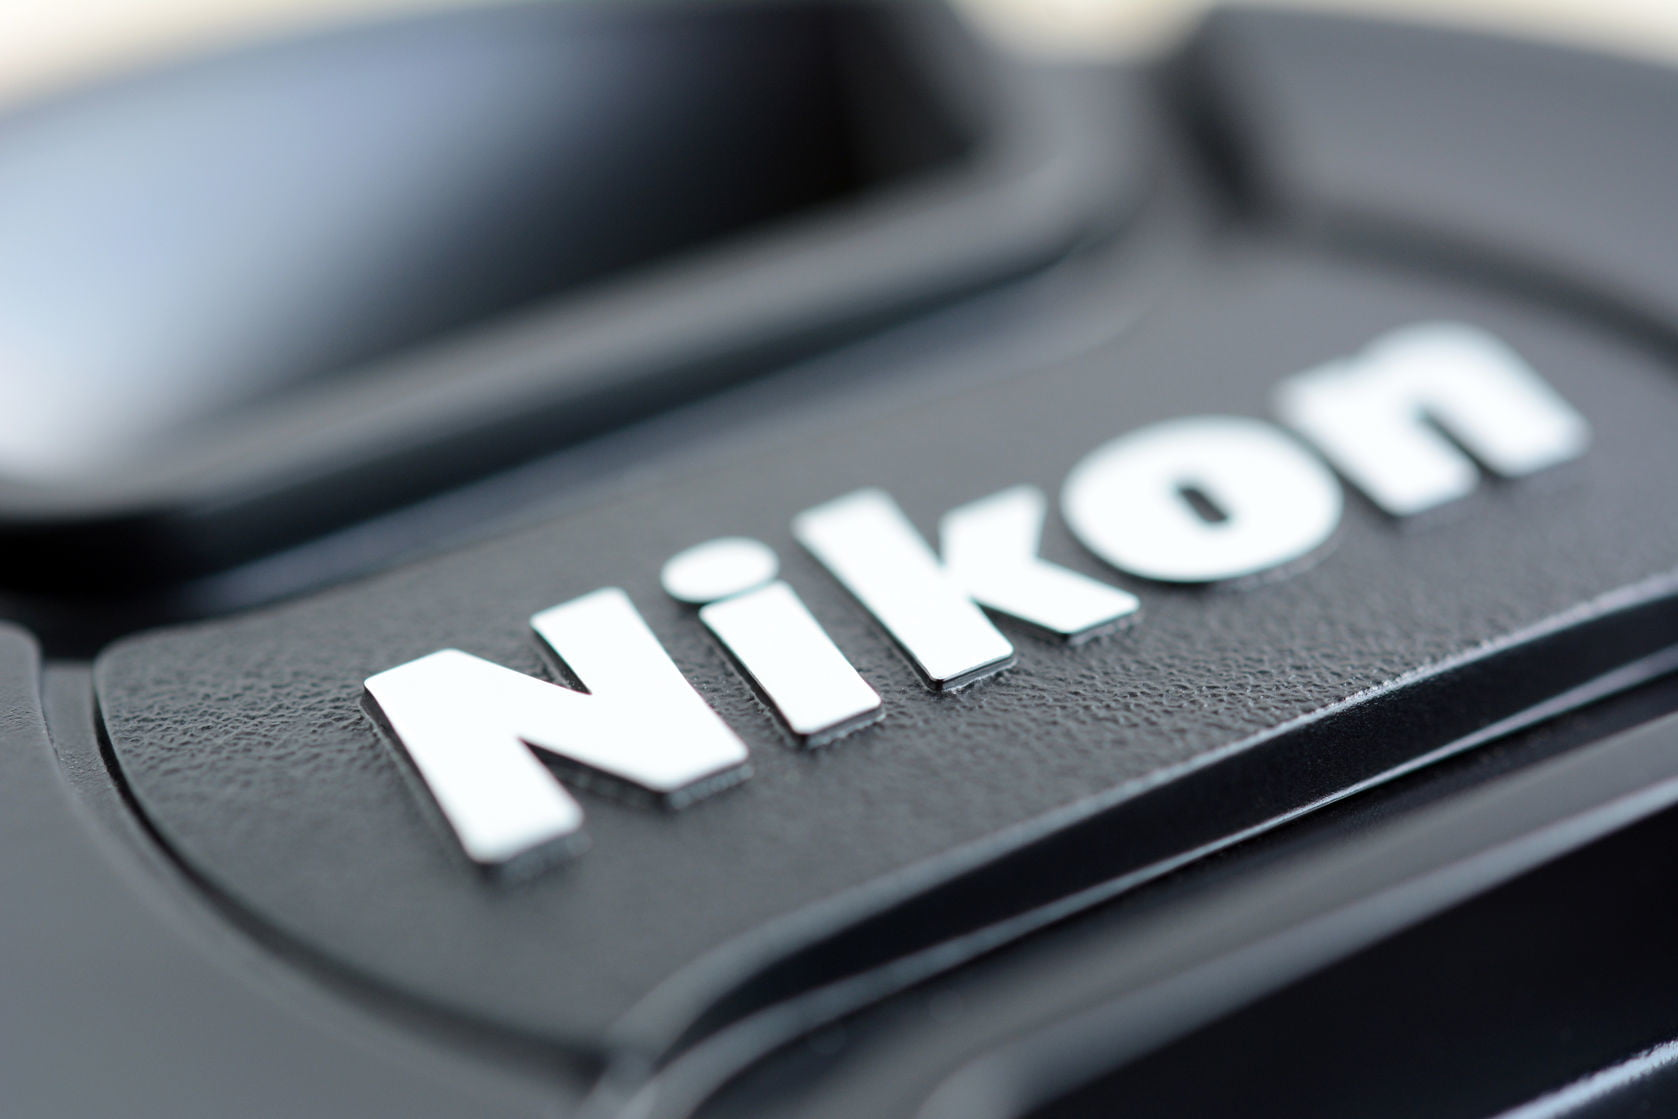 From DSLRs to superzooms, here are the best Nikon cameras